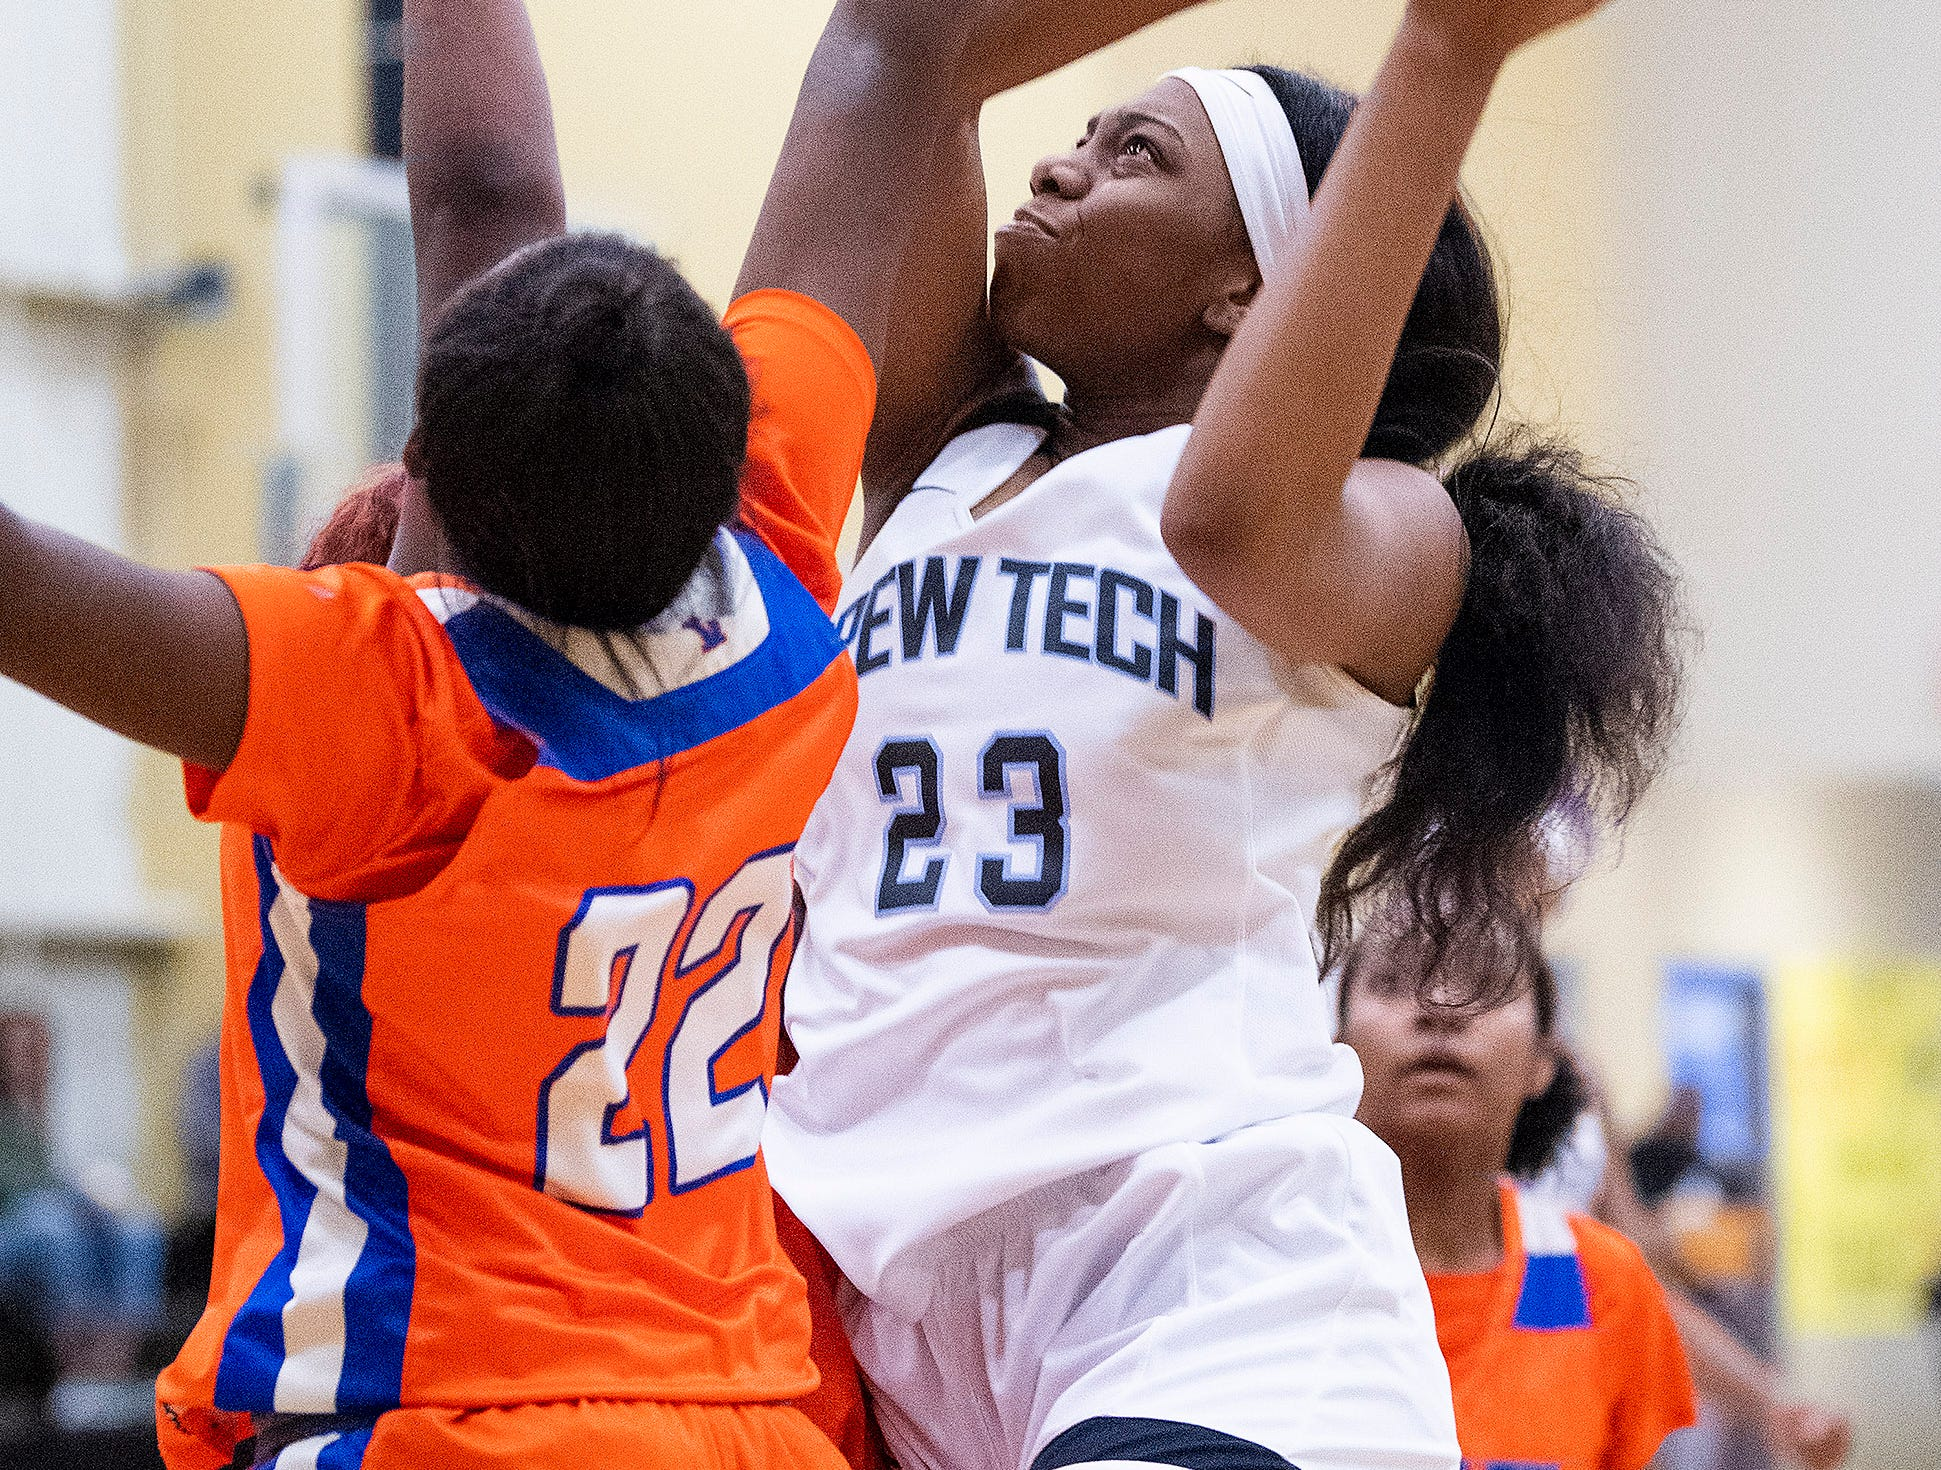 Brewbaker Tech's Kayla Williams (23) shoots against Valley's Roniaseia Cofield (22) at the BrewTech campus in Montgomery, Ala., on Thursday February 7, 2019.